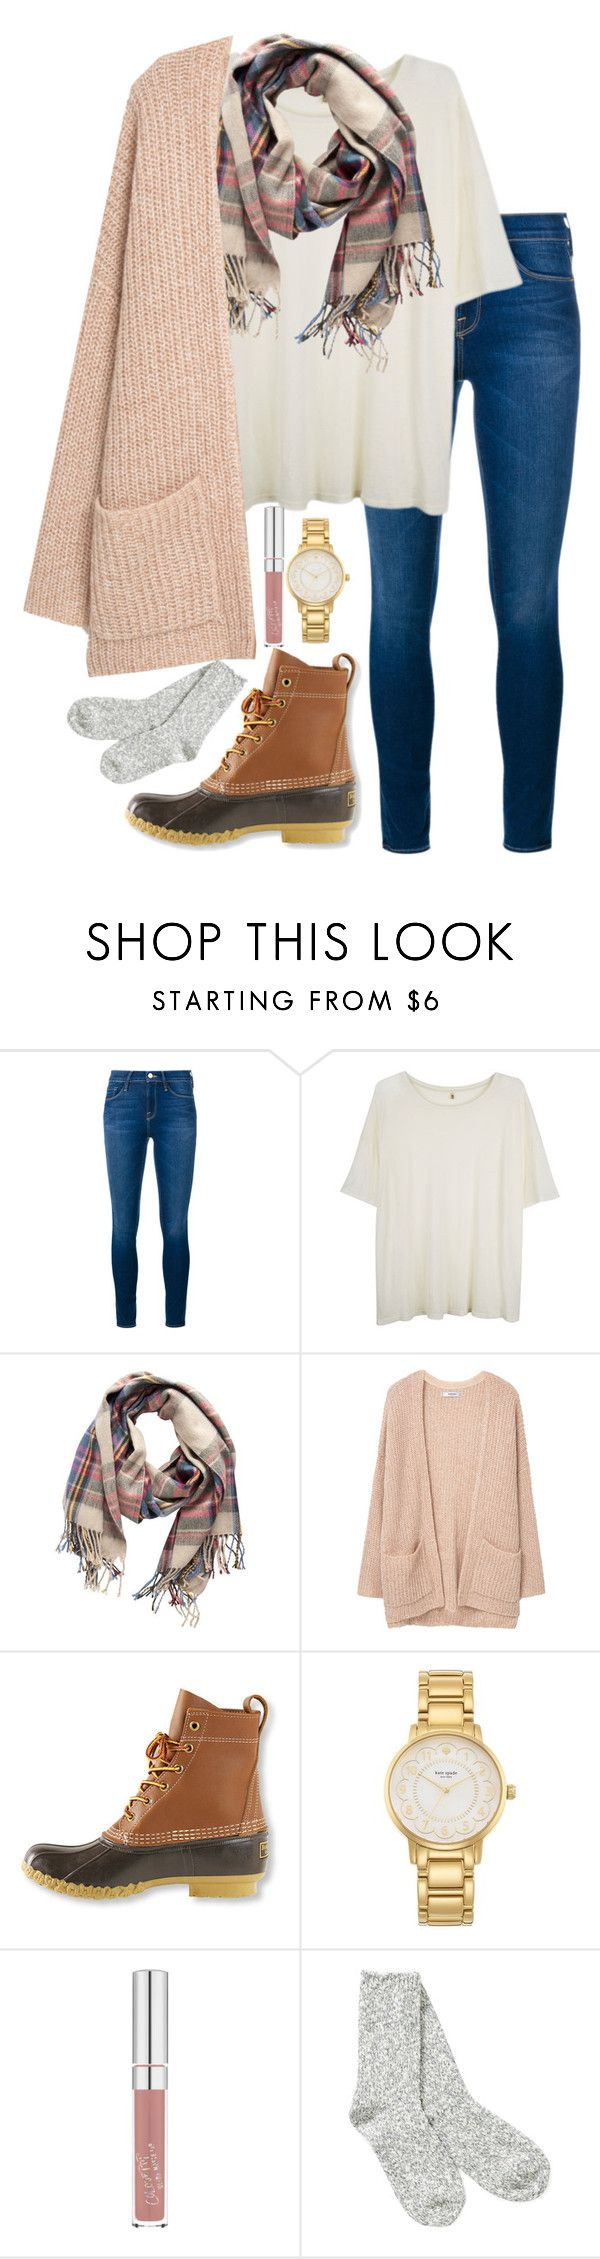 """November and 80 degrees outside"" by valerienwashington ❤ liked on Polyvore featuring Frame Denim, R13, Pieces, MANGO, L.L.Bean, Kate Spade and TNA"